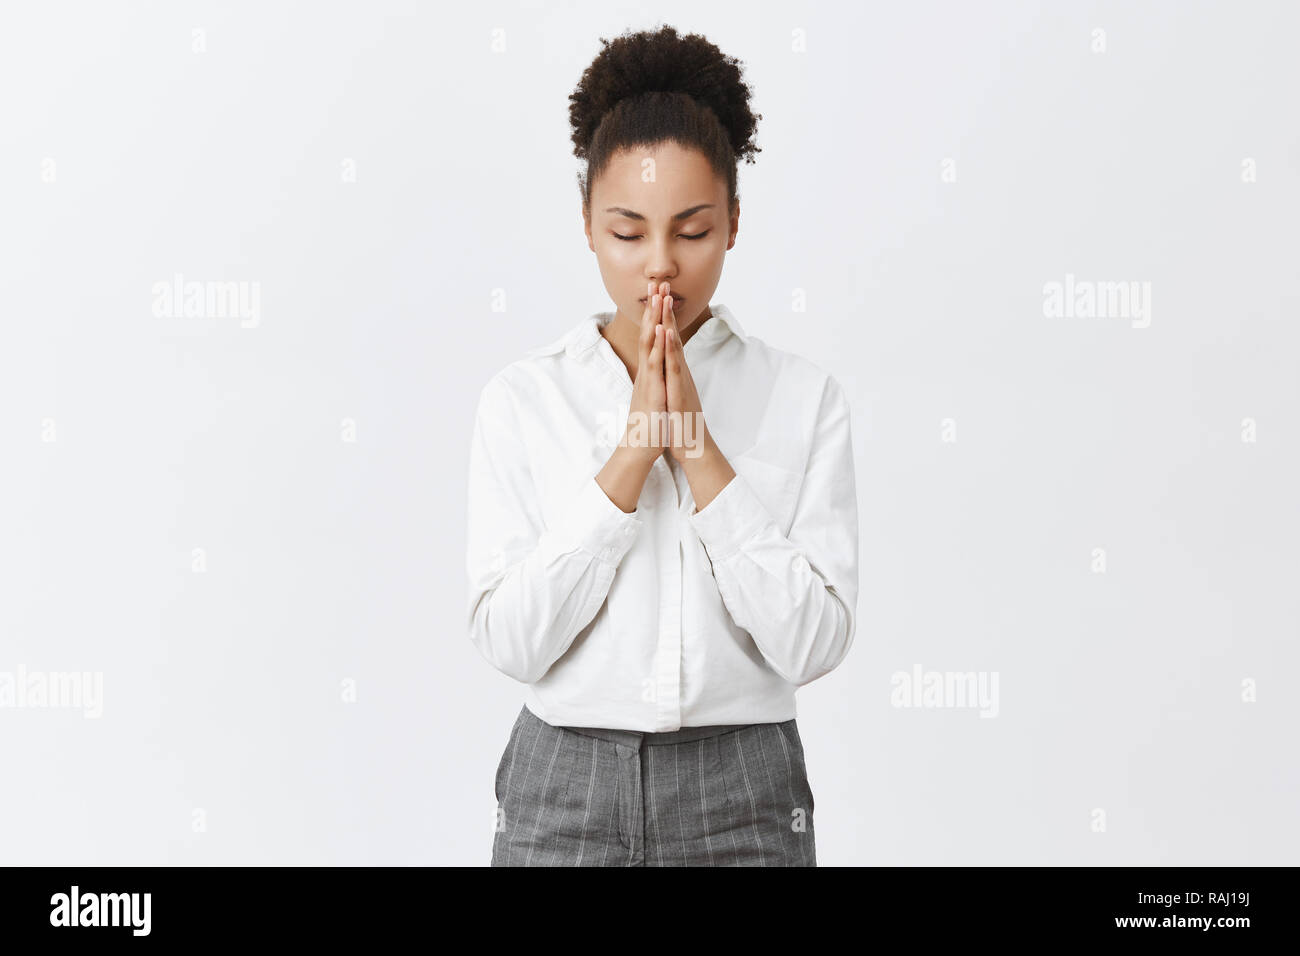 Time to pray and talk with mighty god. Relaxed and focused good-looking dark-skinned female entrepreneur calming down while holding palms together, praying or hoping, being believer in miracles - Stock Image